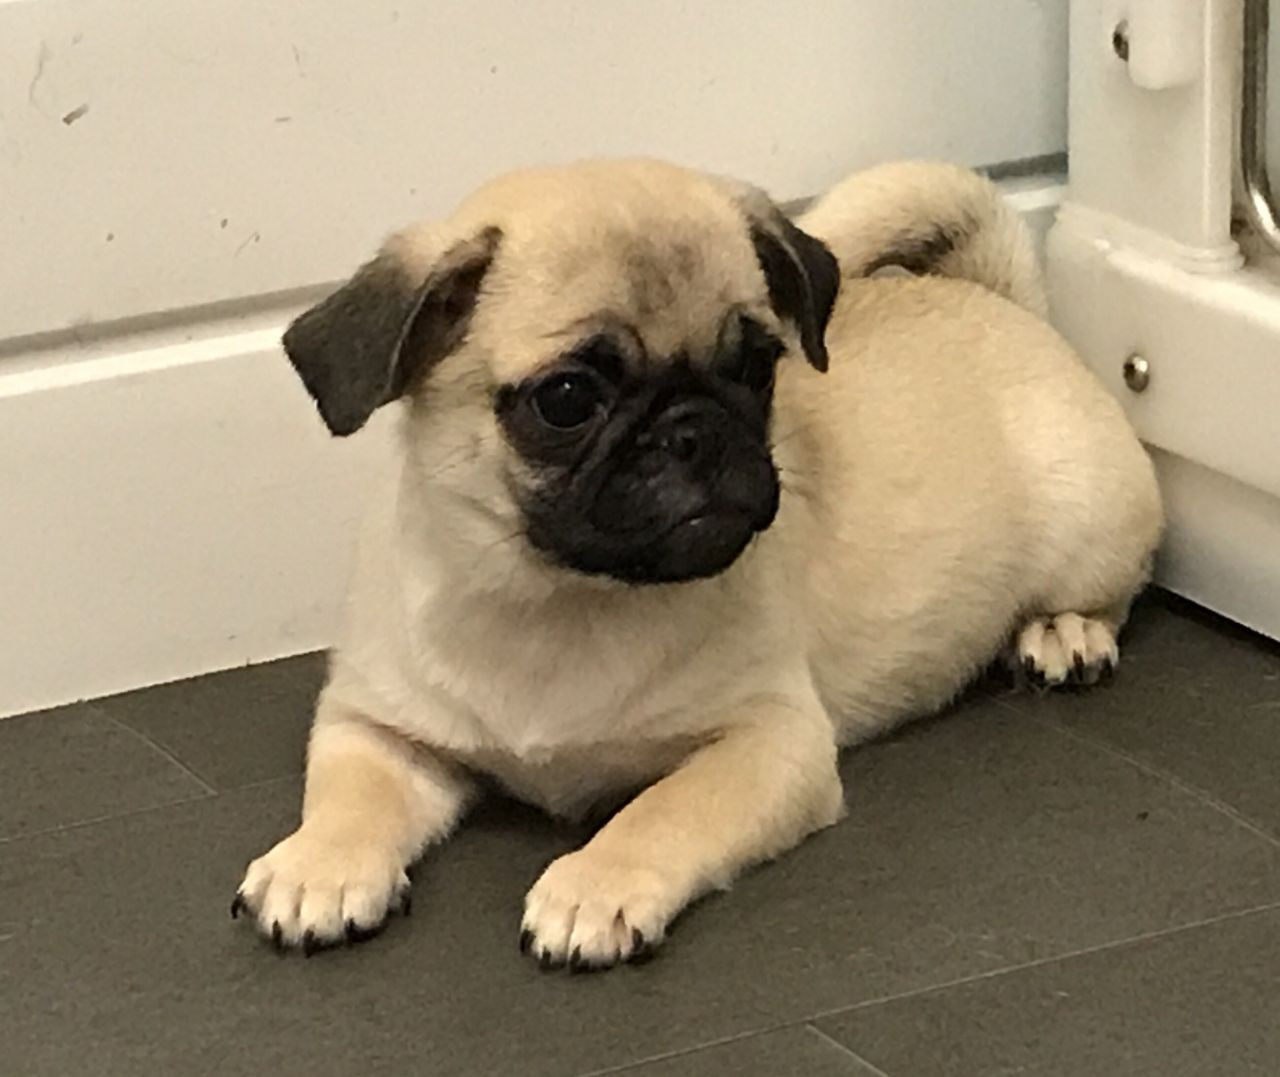 Pug Puppies For Sale Queen City Drive Charlotte Nc 234028